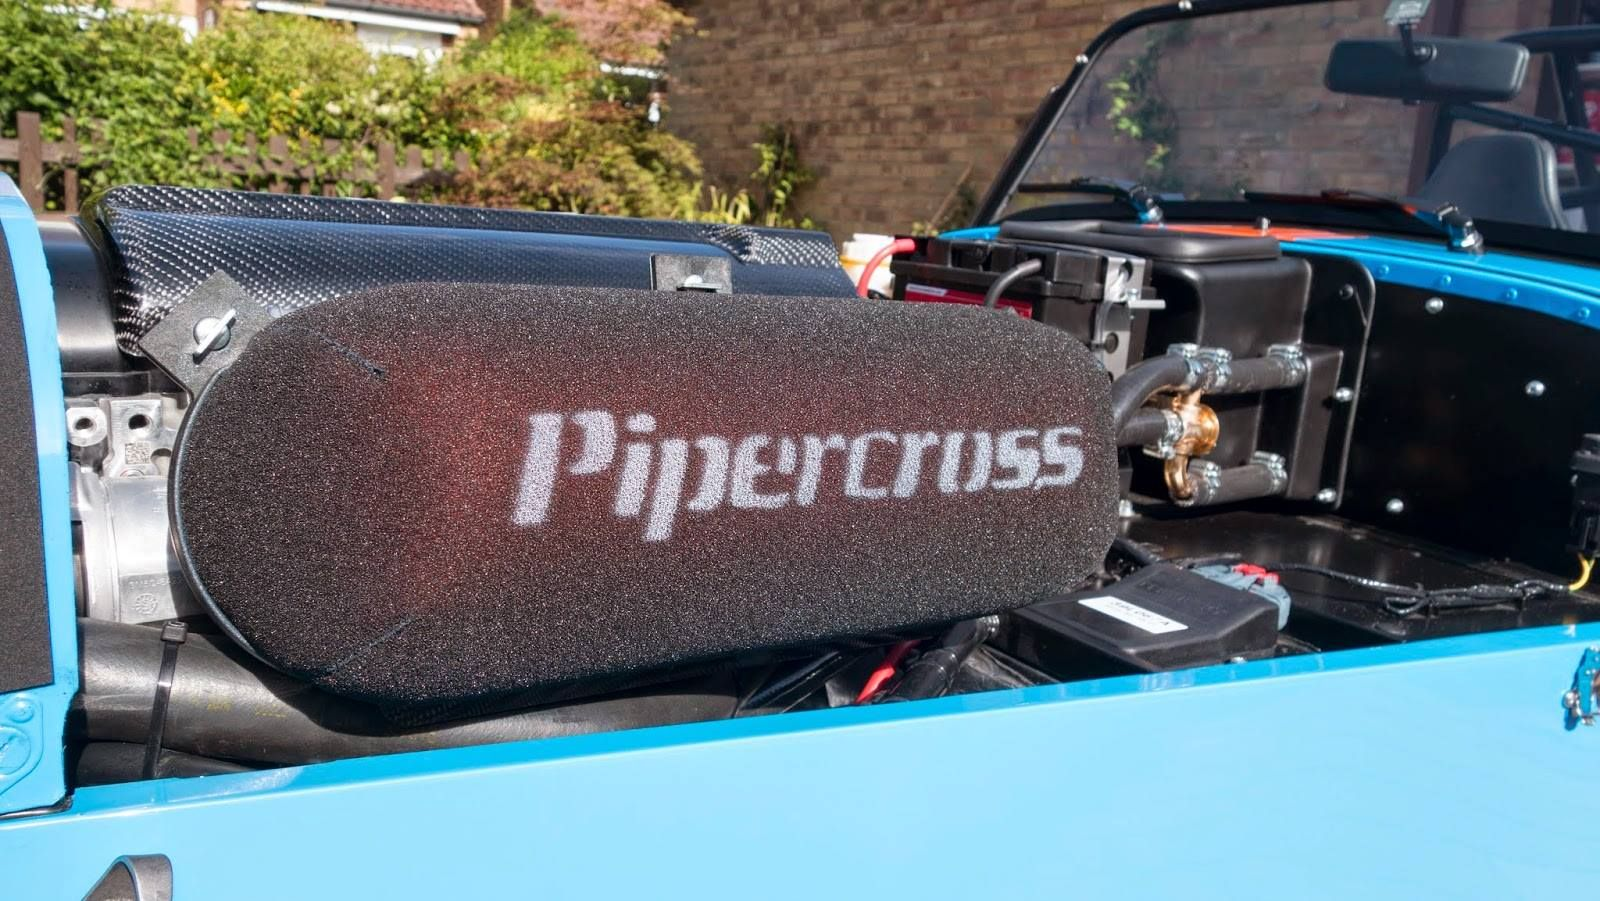 Pipercross Filter on a Caterham R500. Performance air